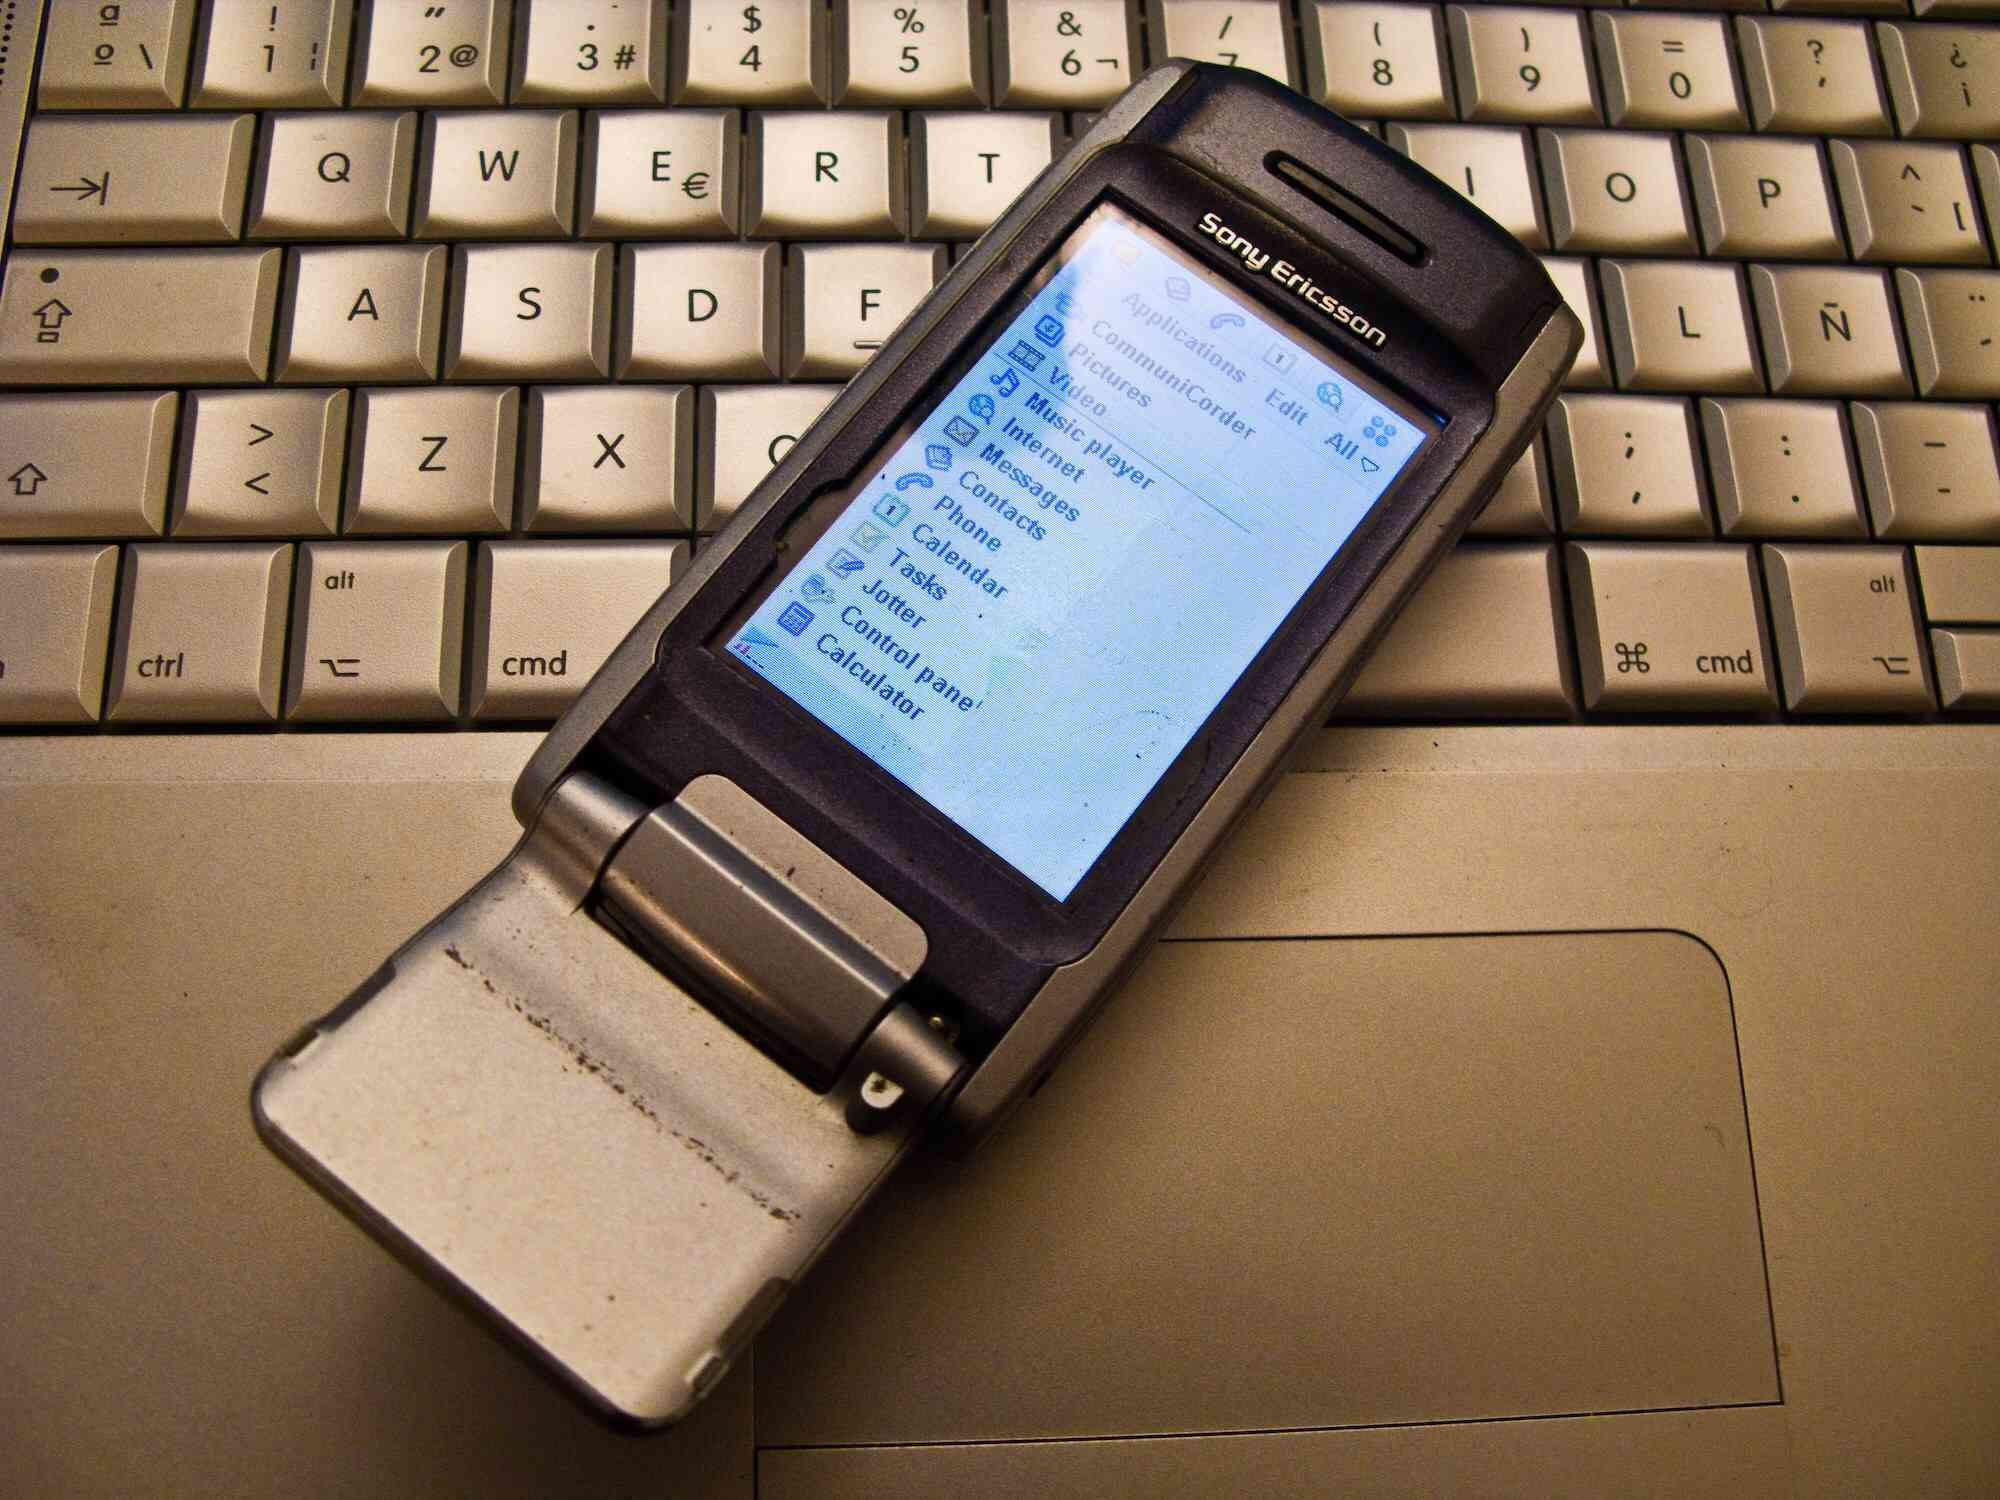 Photo of an old Sony Ericsson cell phone resting on a laptop